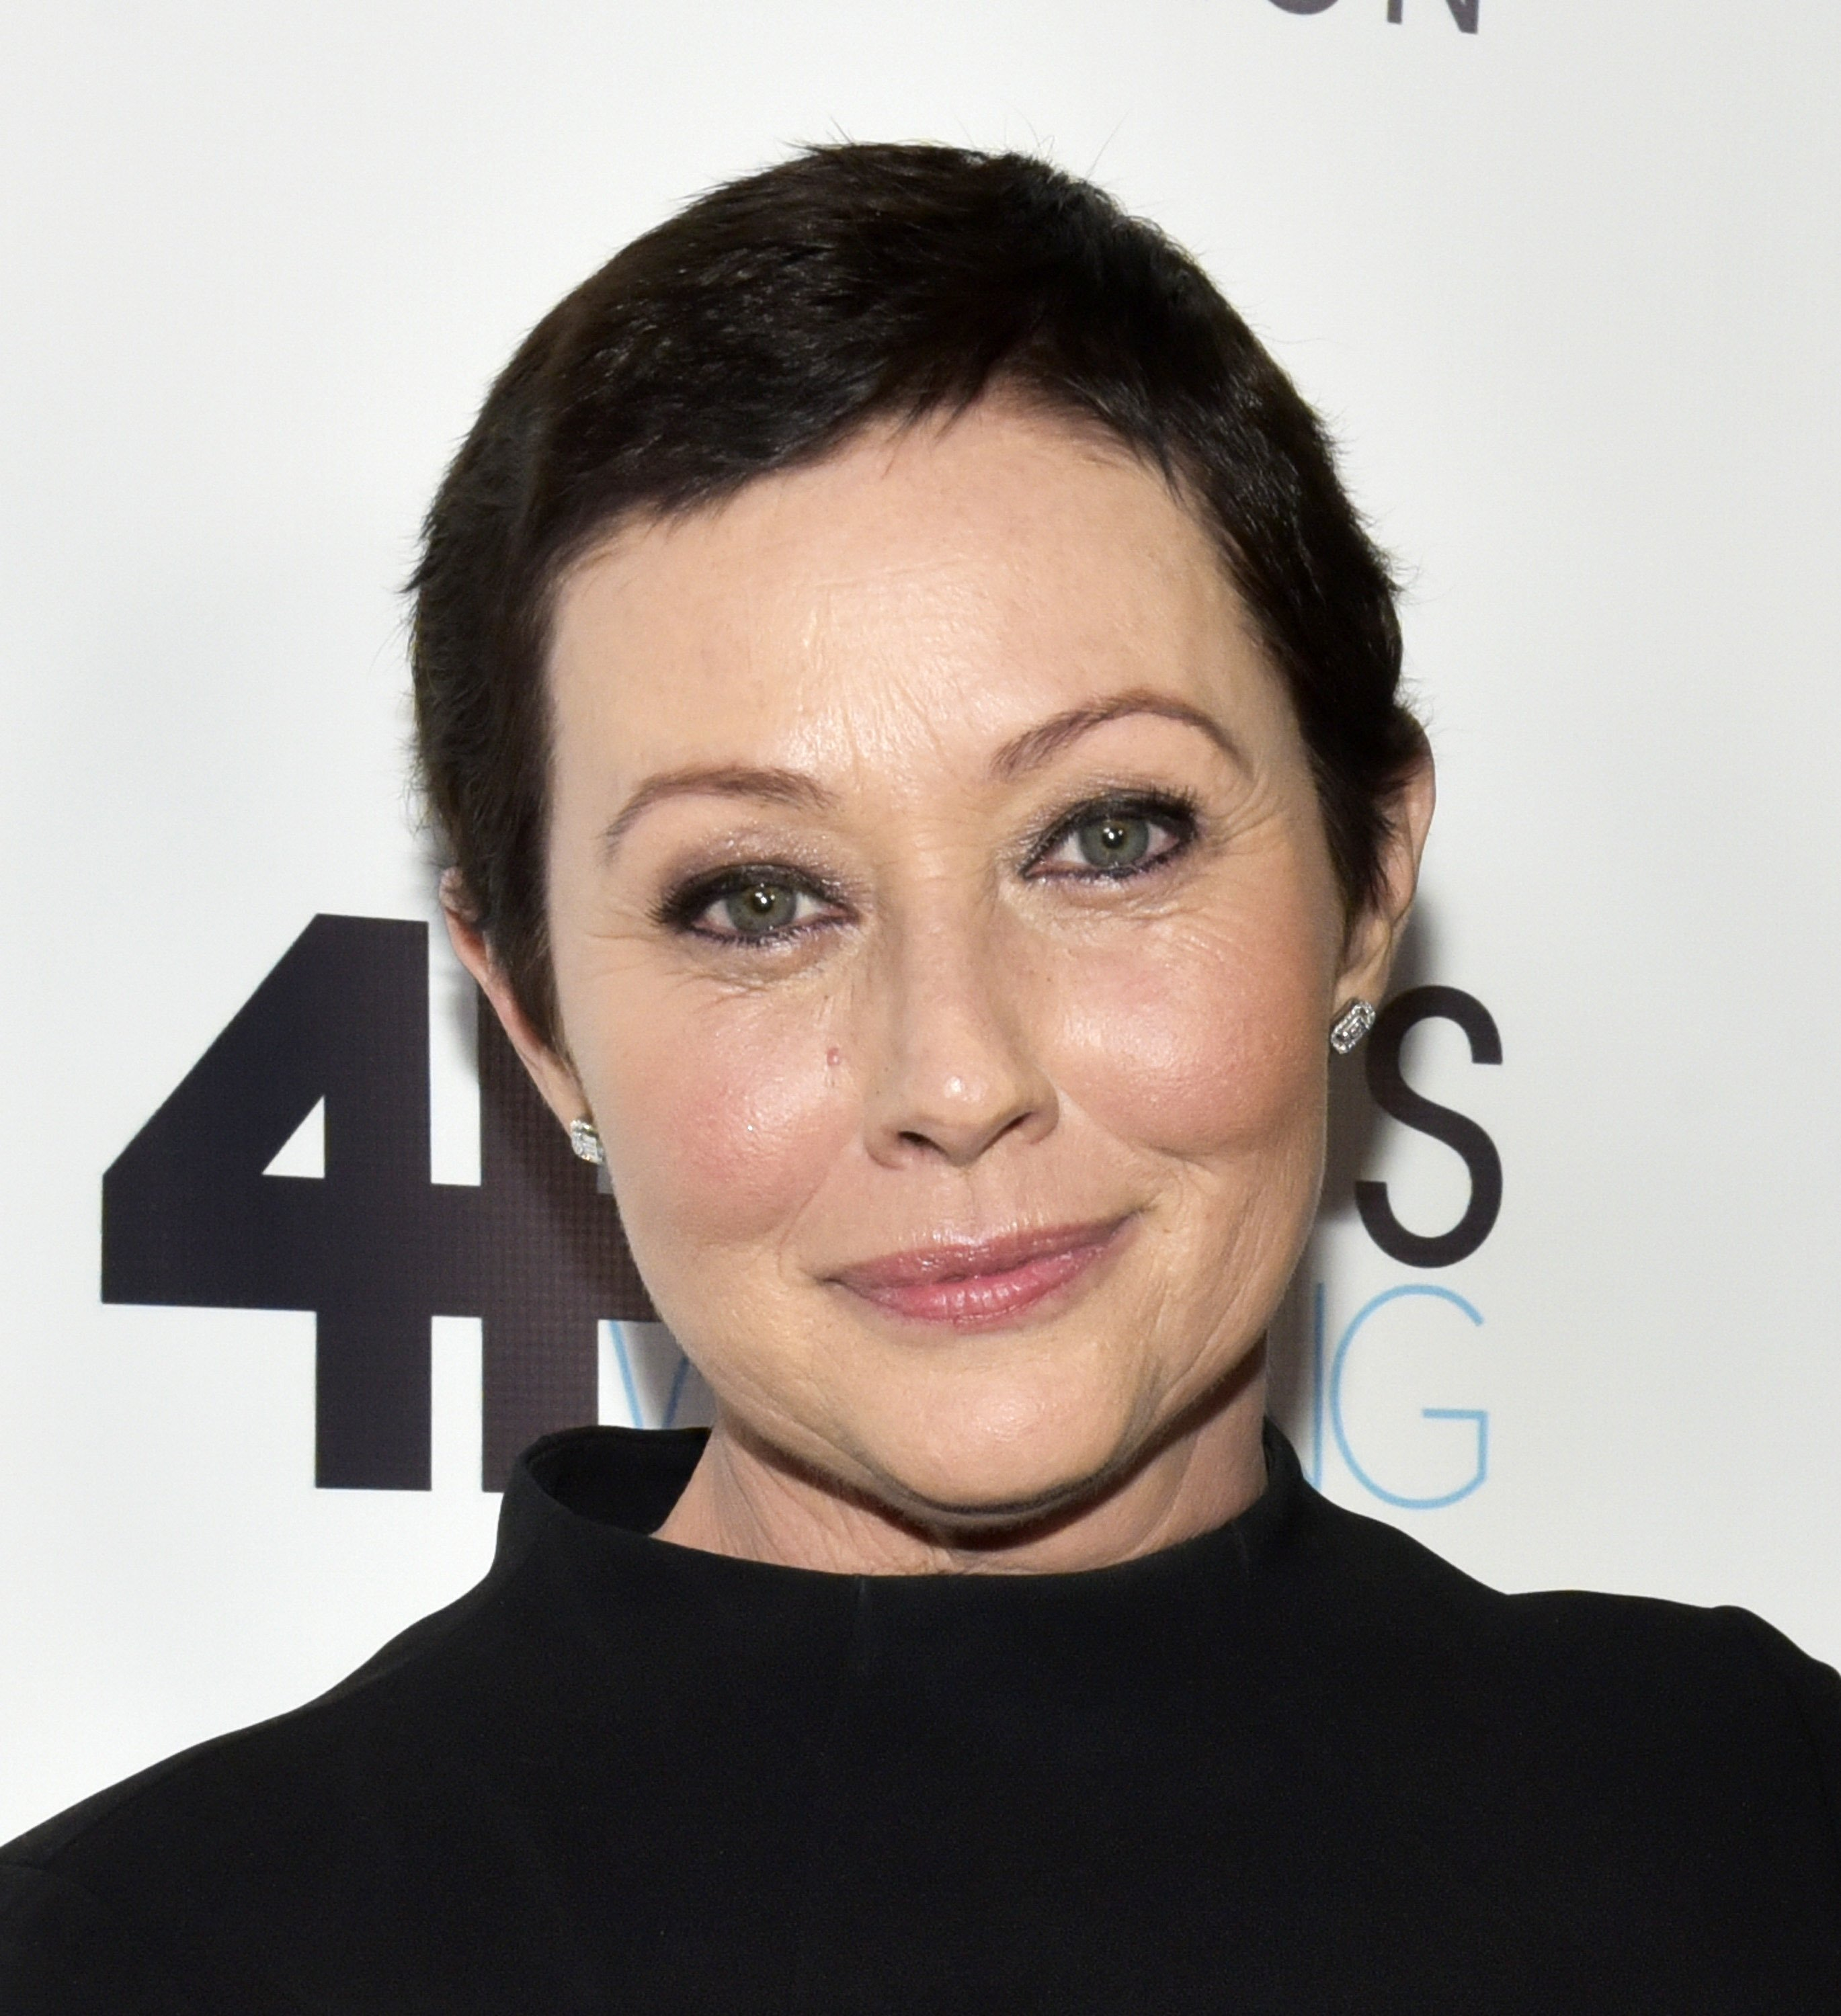 Shannen Doherty at the Animal Hope and Wellness Foundation's 1st annual Gratitude Gala at W Hollywood on March 4, 2017 in Hollywood, California   Photo: Getty Images